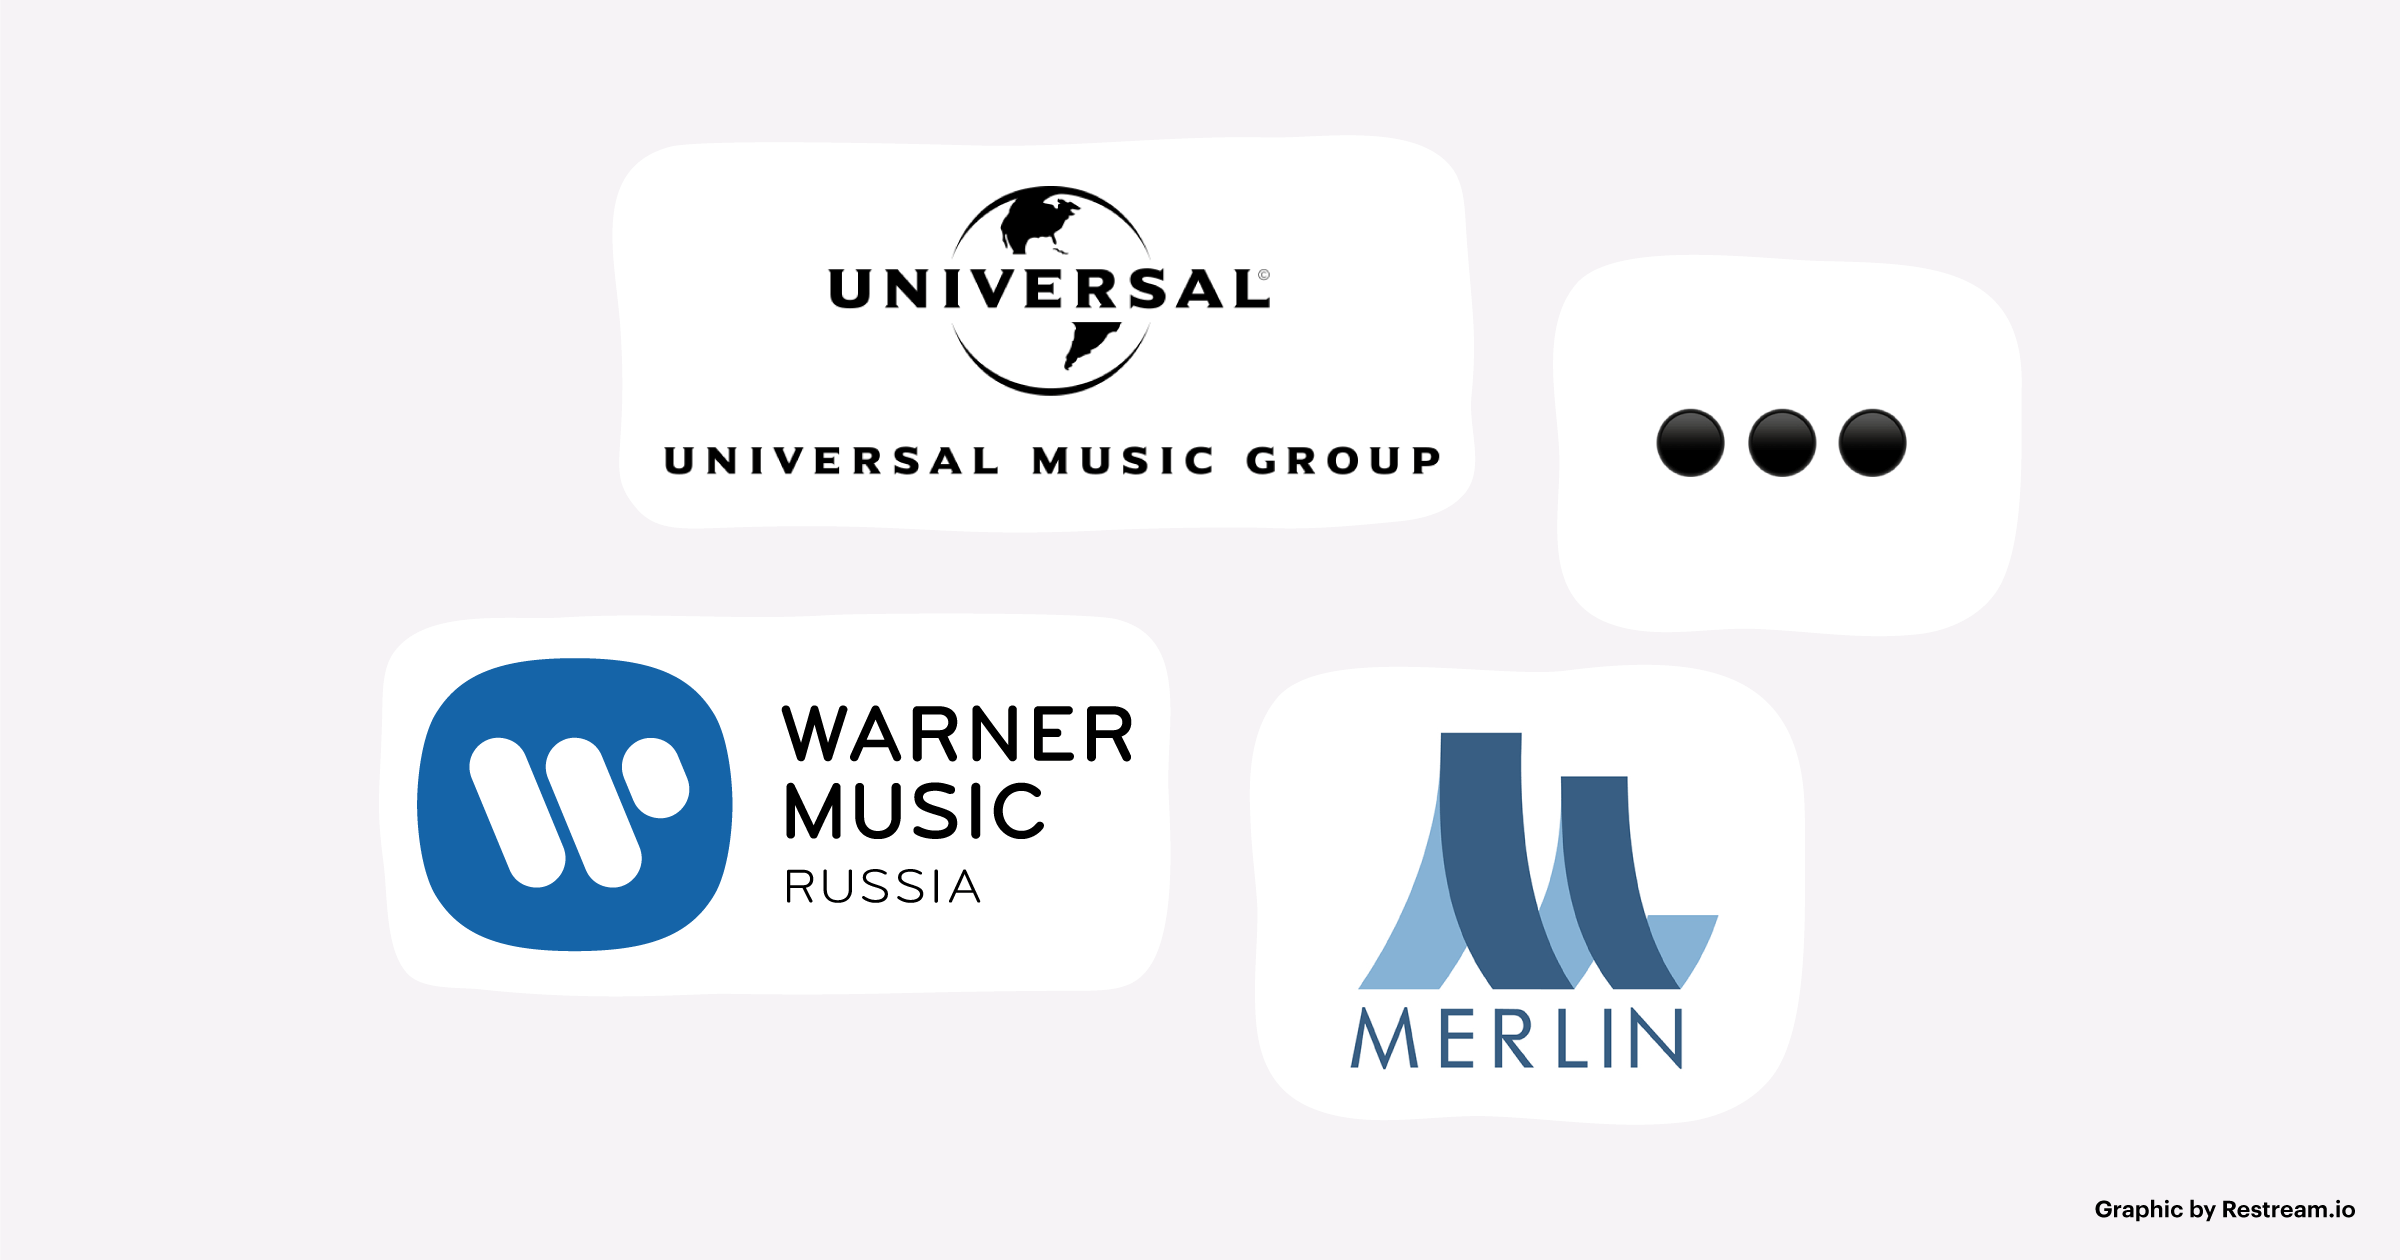 Warner Music Group, Universal Music Group, Merlin Network, etc.